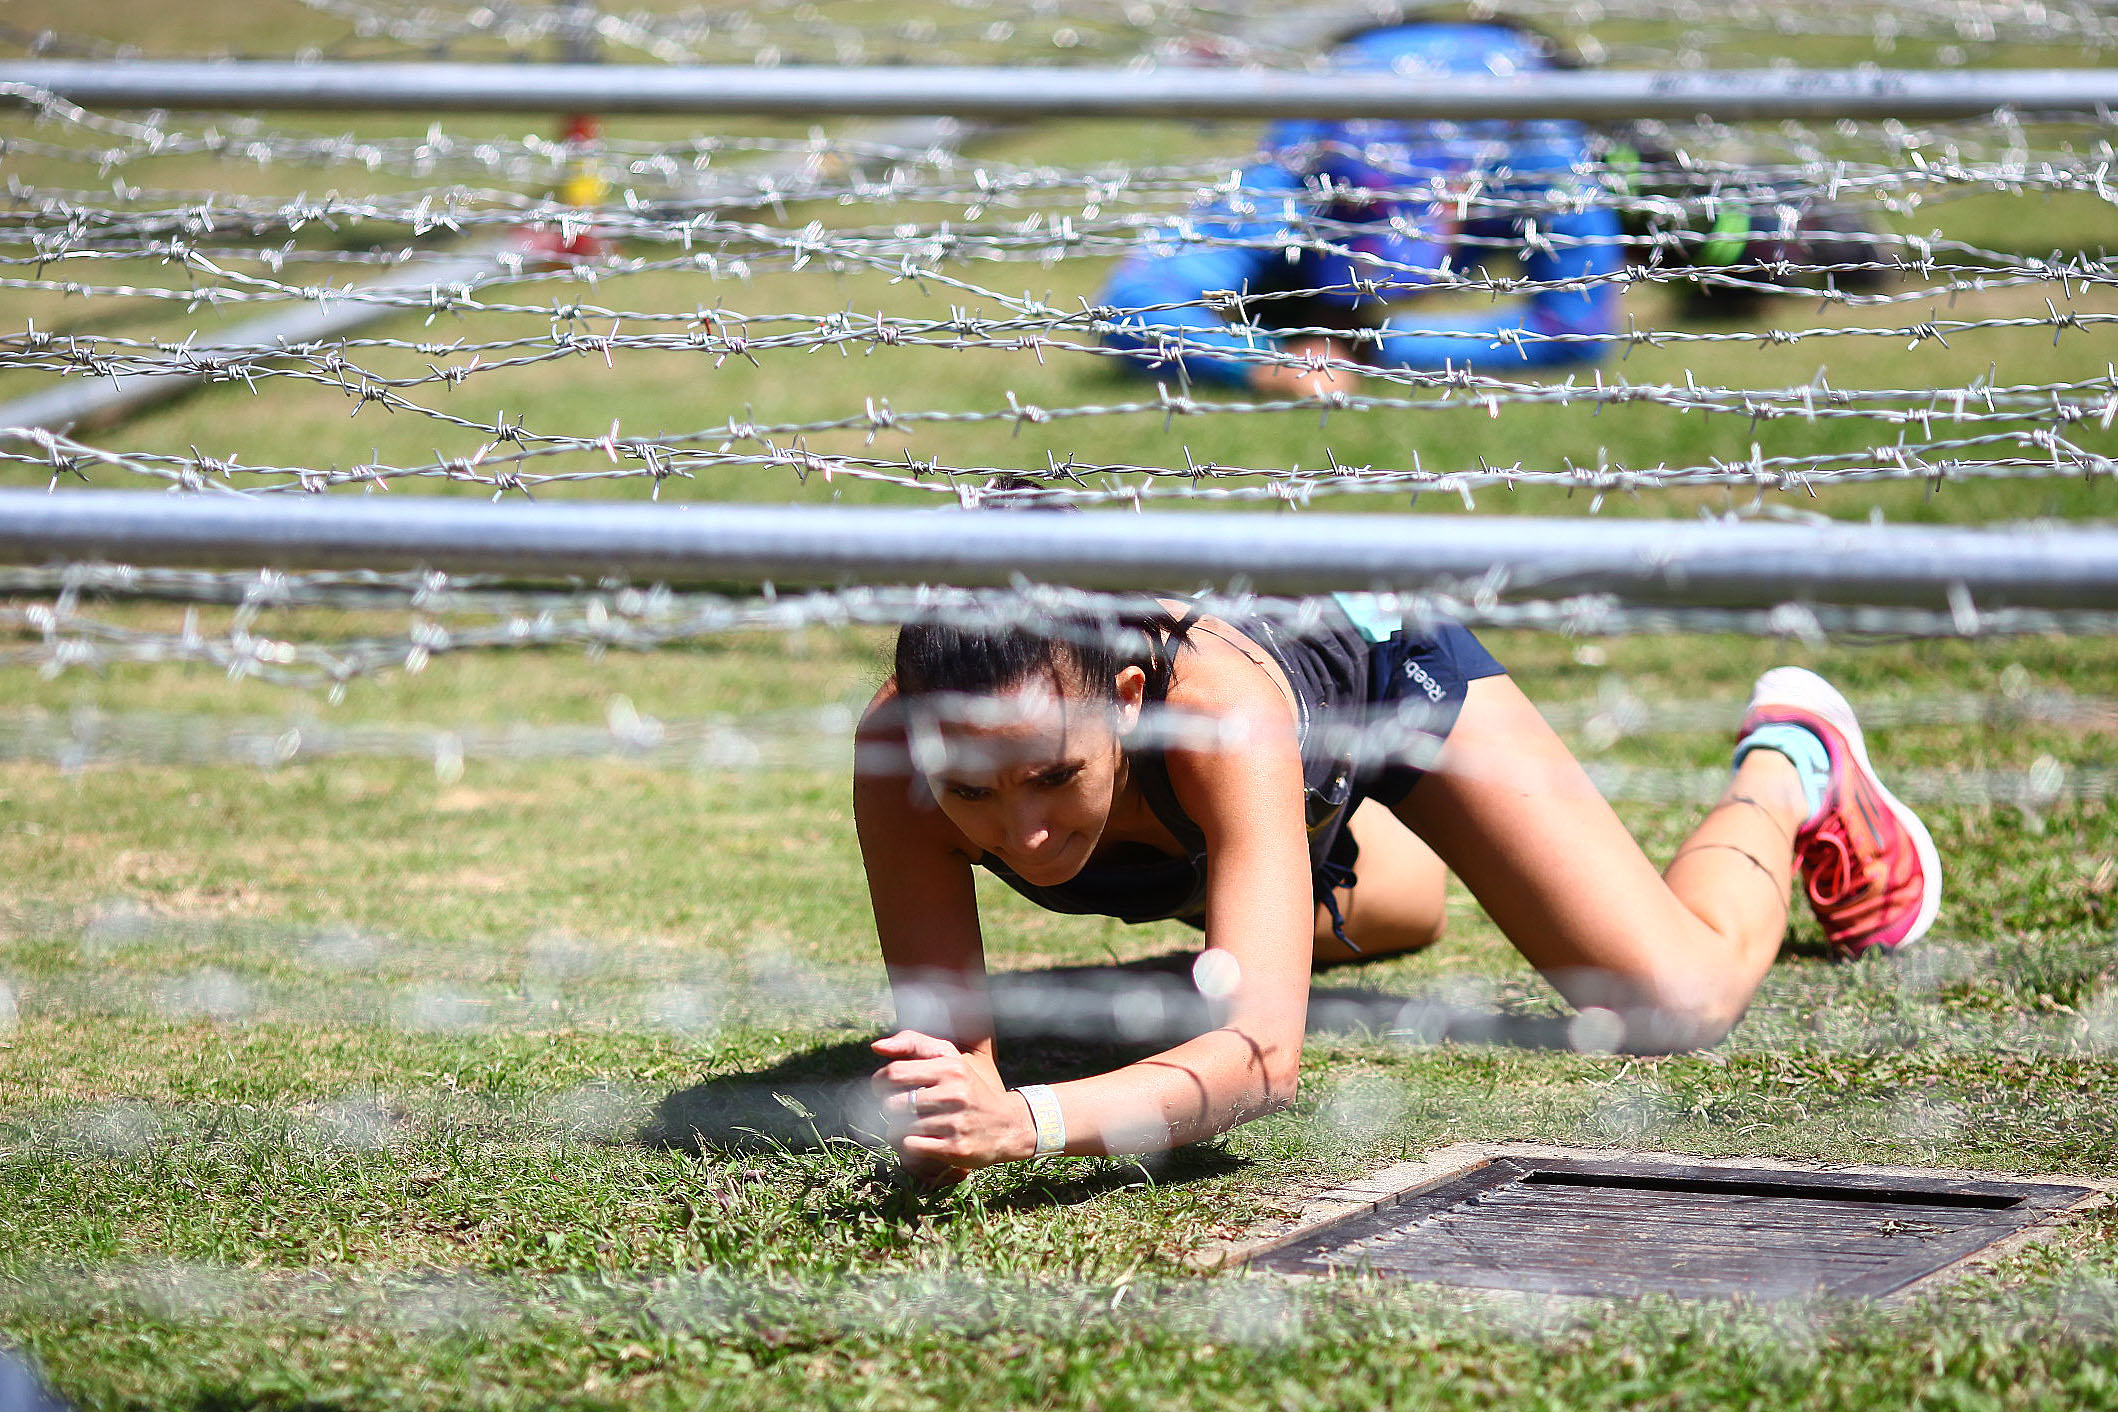 GRUELING COMPETITION. A contestant crawls under barbed wire. Photo by Josh Albelda/Rappler